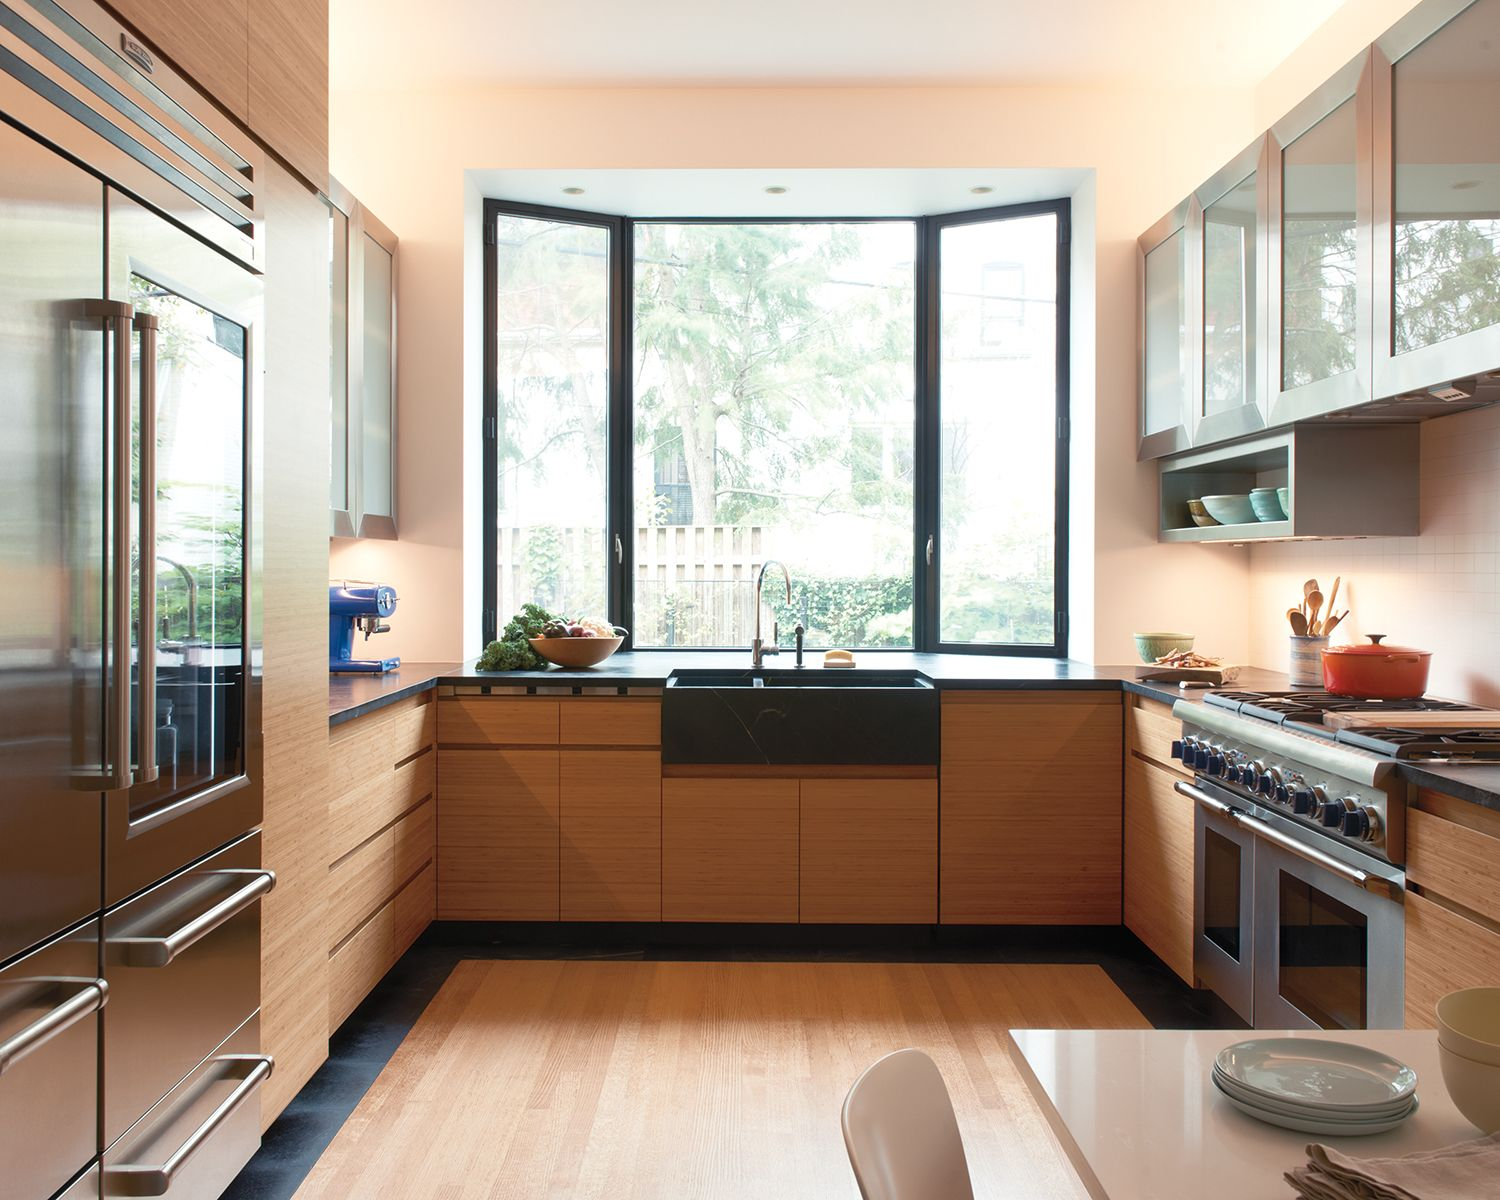 Park Slope Renovation Goes Classic Modern (With images ...